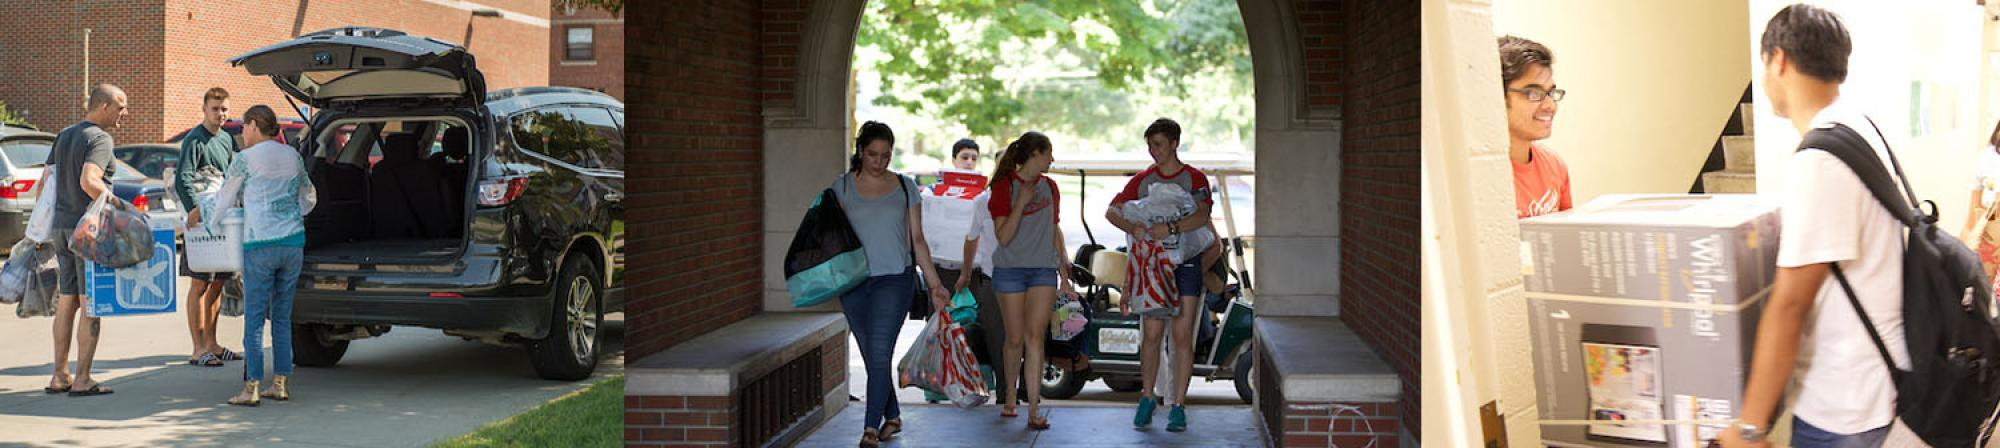 First Picture: A girl and her father unloading a mini-van, Second Picture: 4 Female Student Athletes assisting a new student by carring boxes, Third Picture: Two international students moving a mini-dridge up the stairs of a residence hall